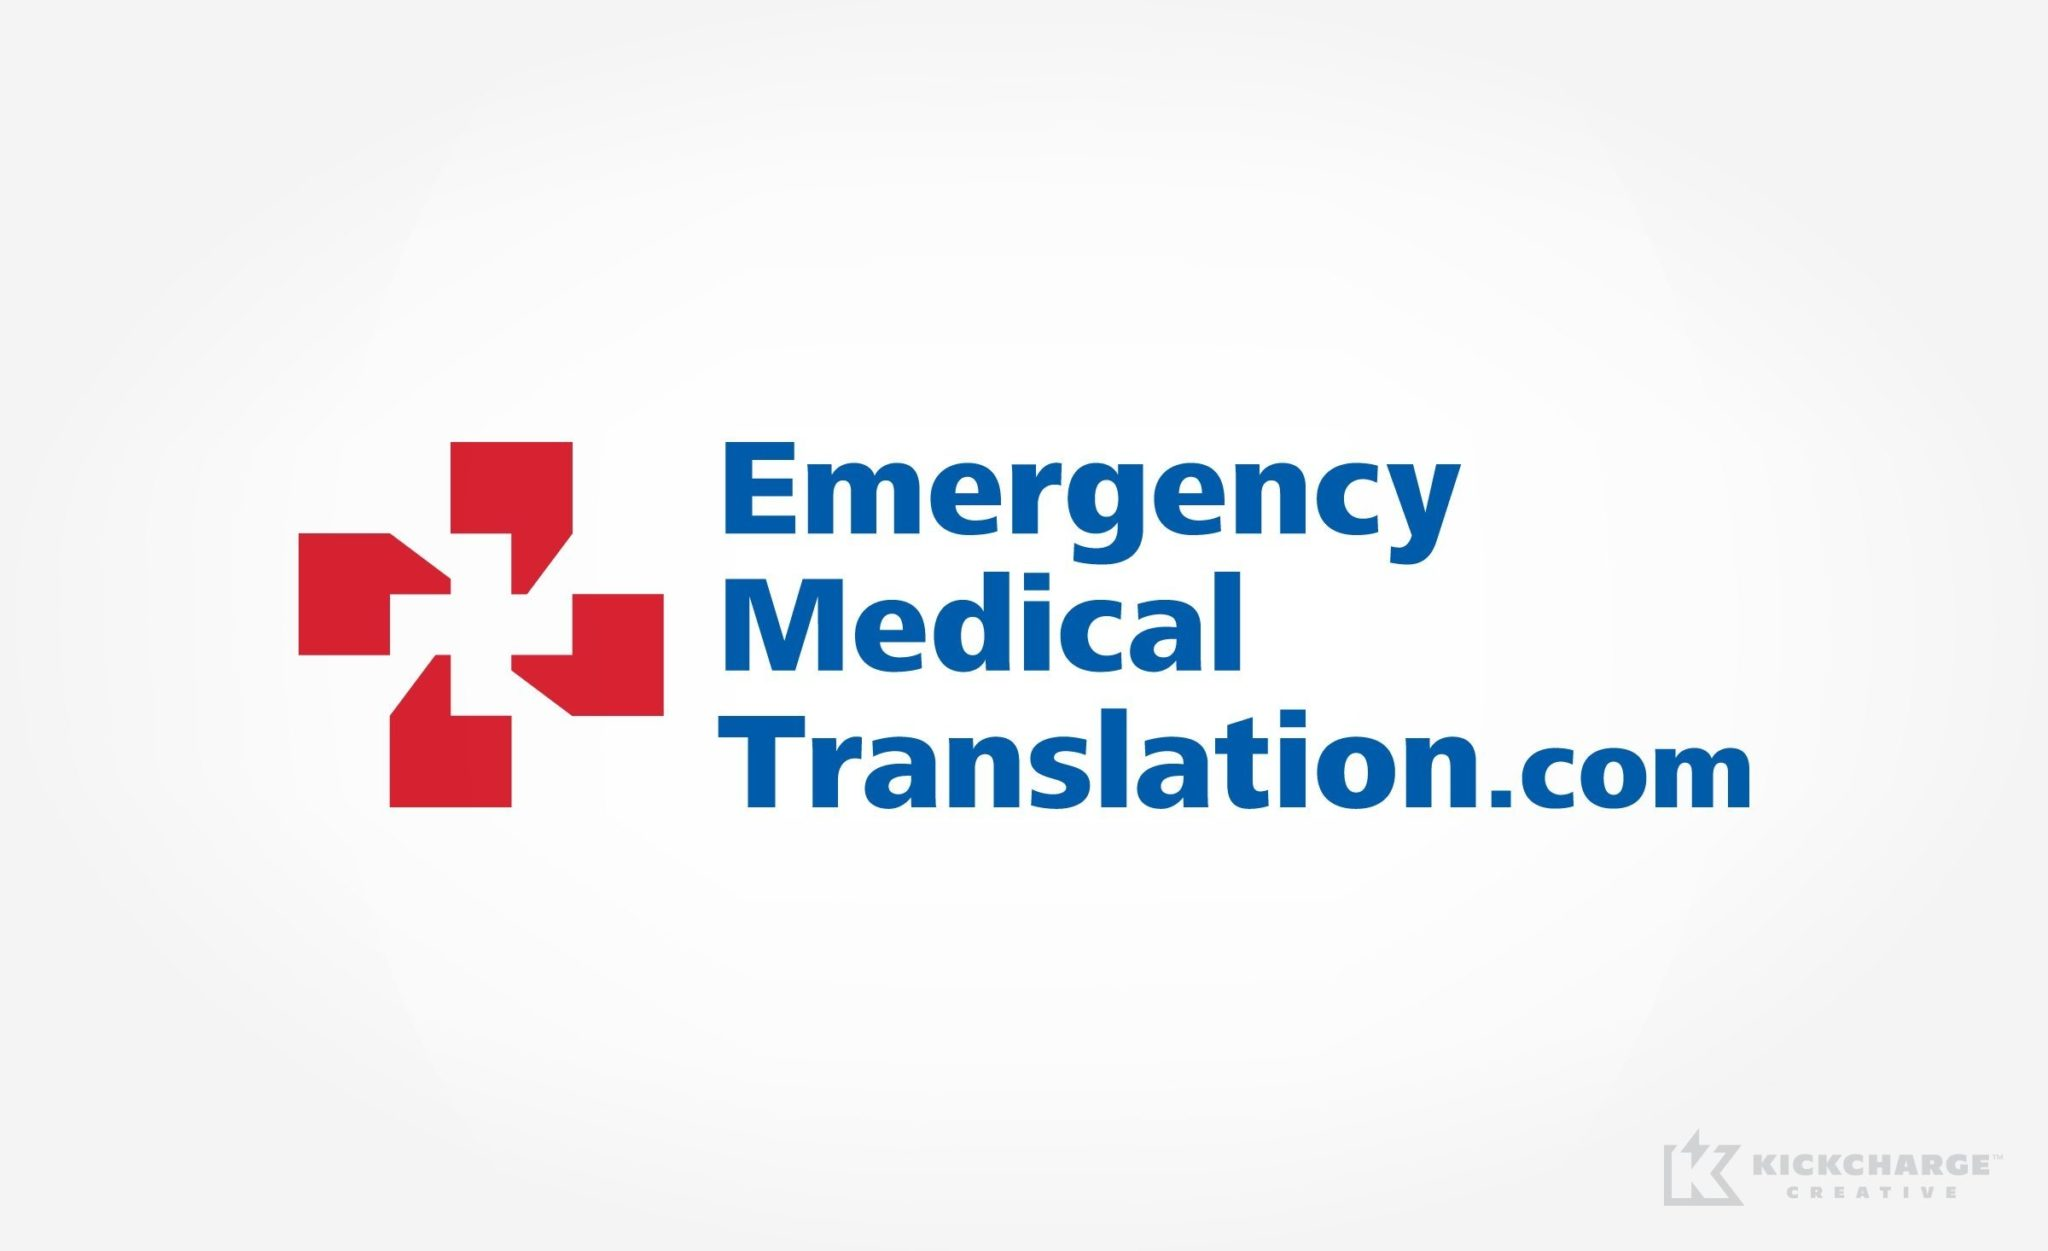 Emergency Medical Translation